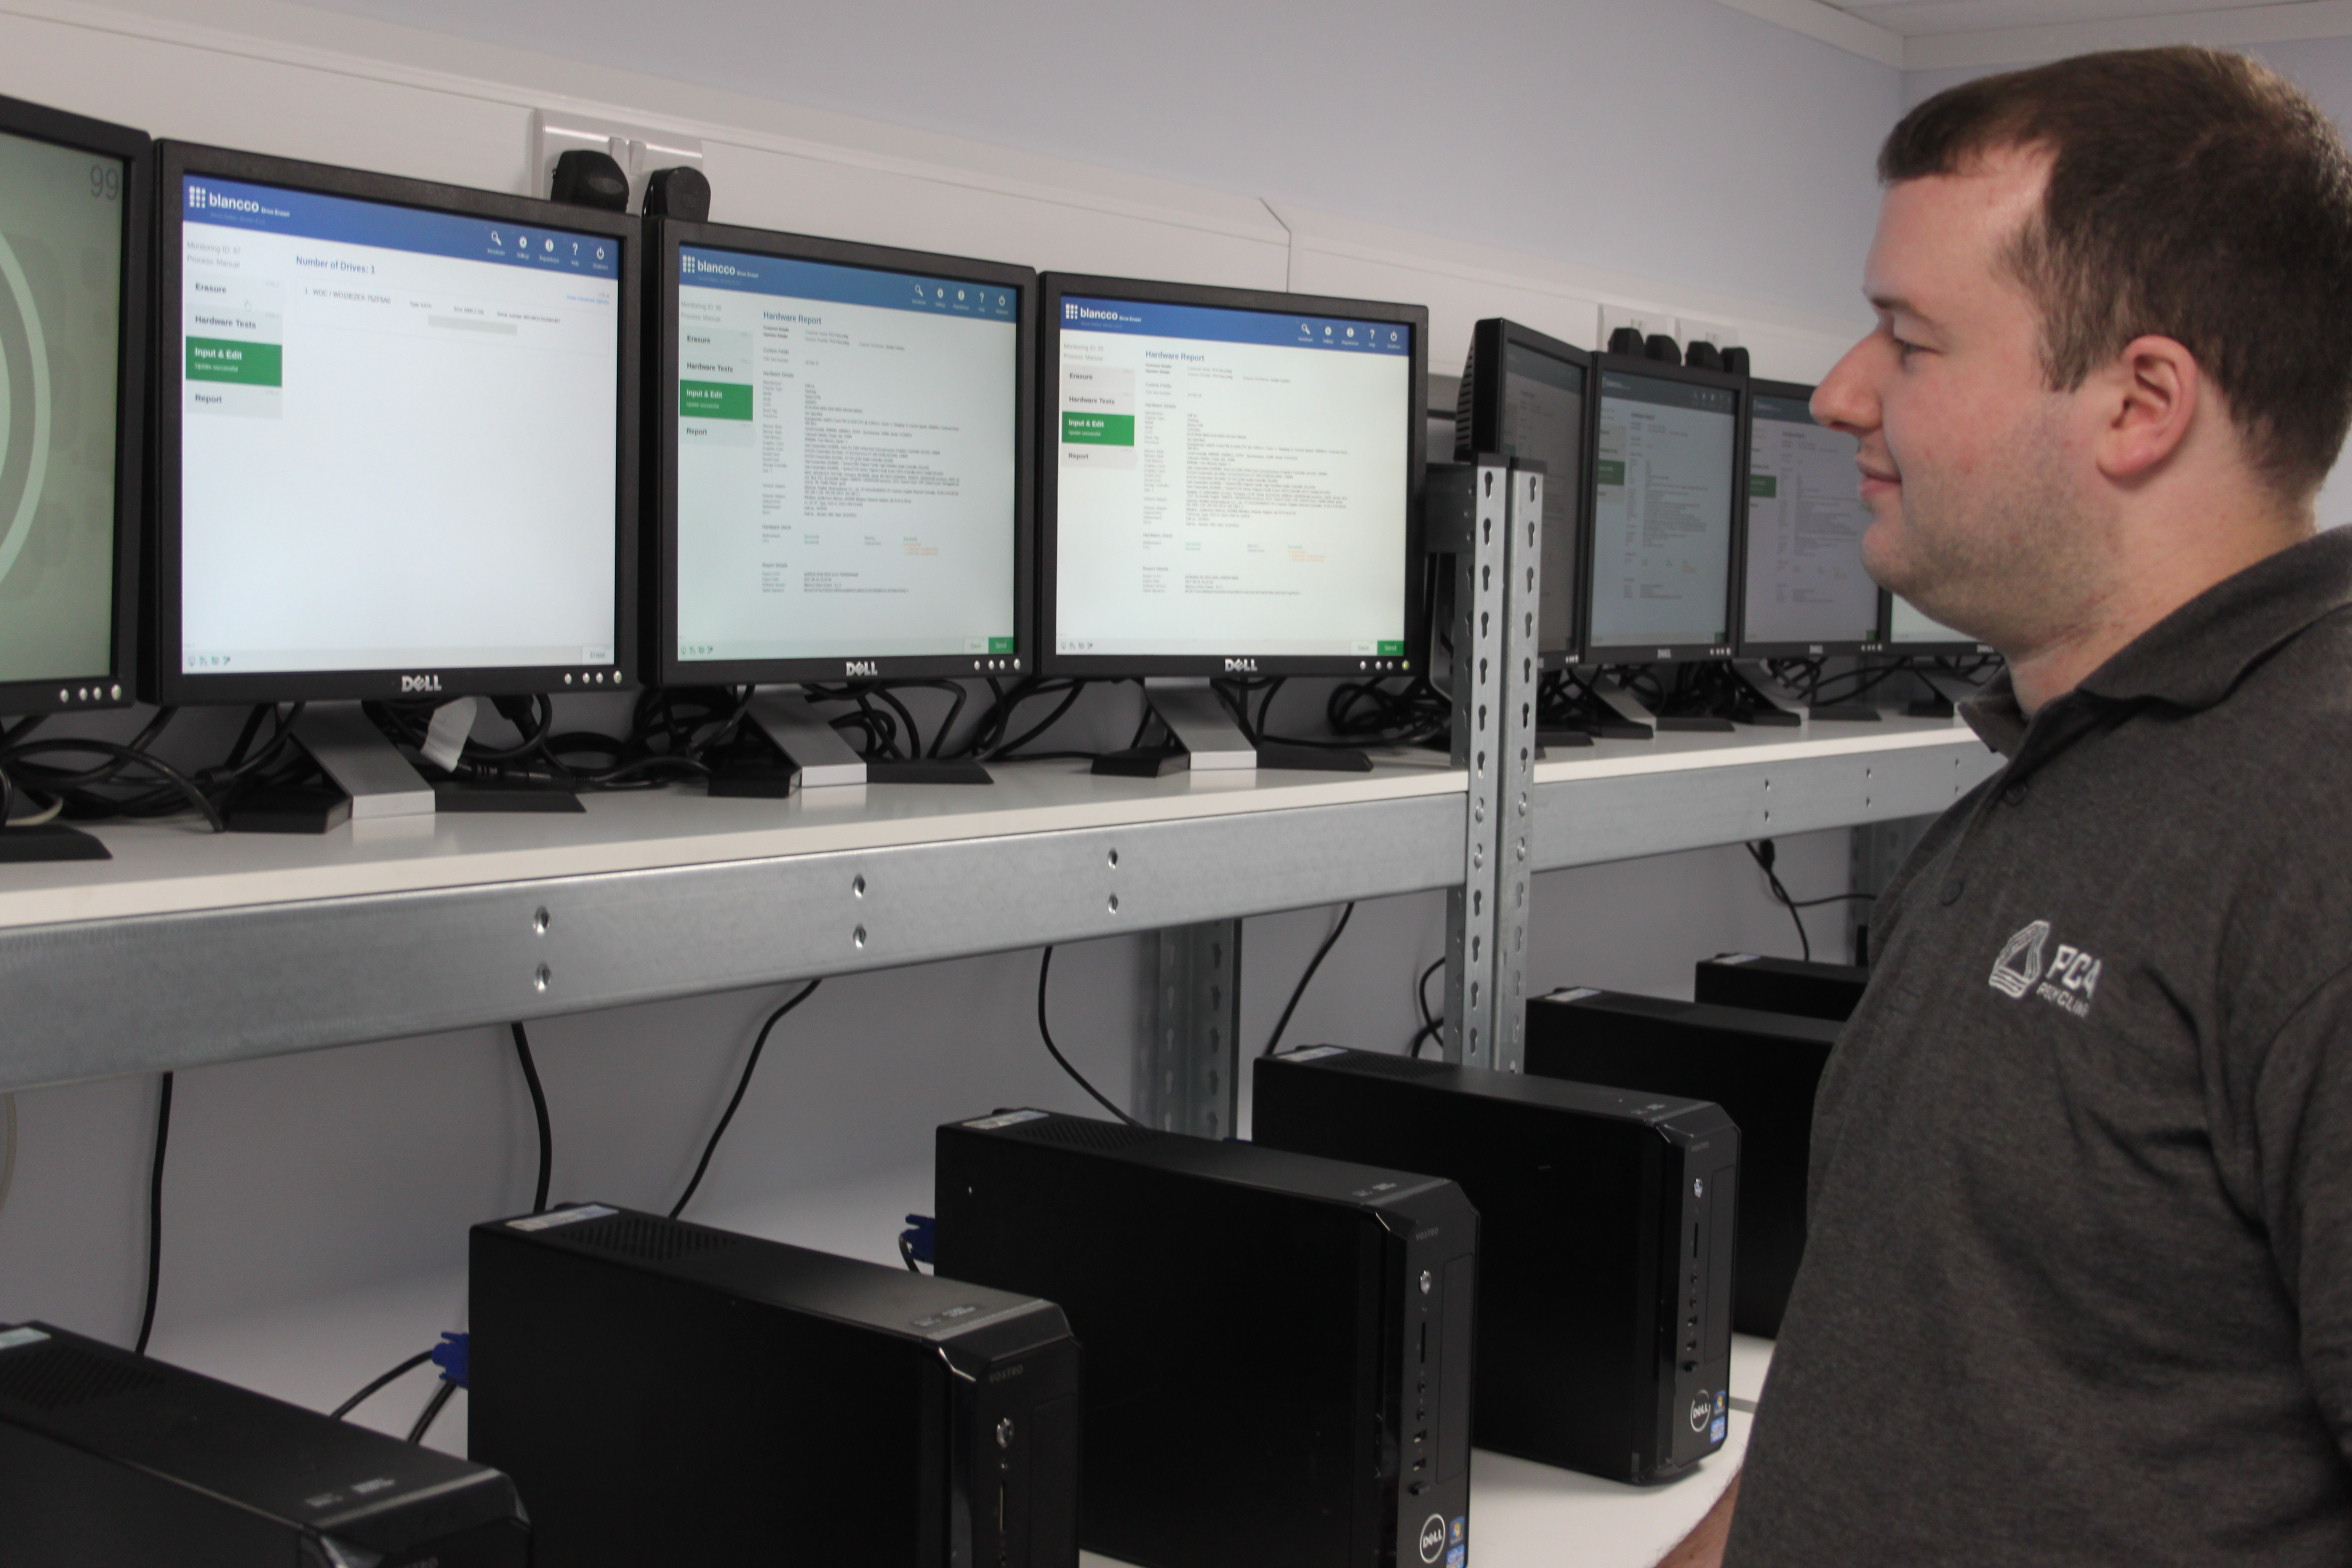 PC4 Recycling technician wiping multiple PCs with Blancco